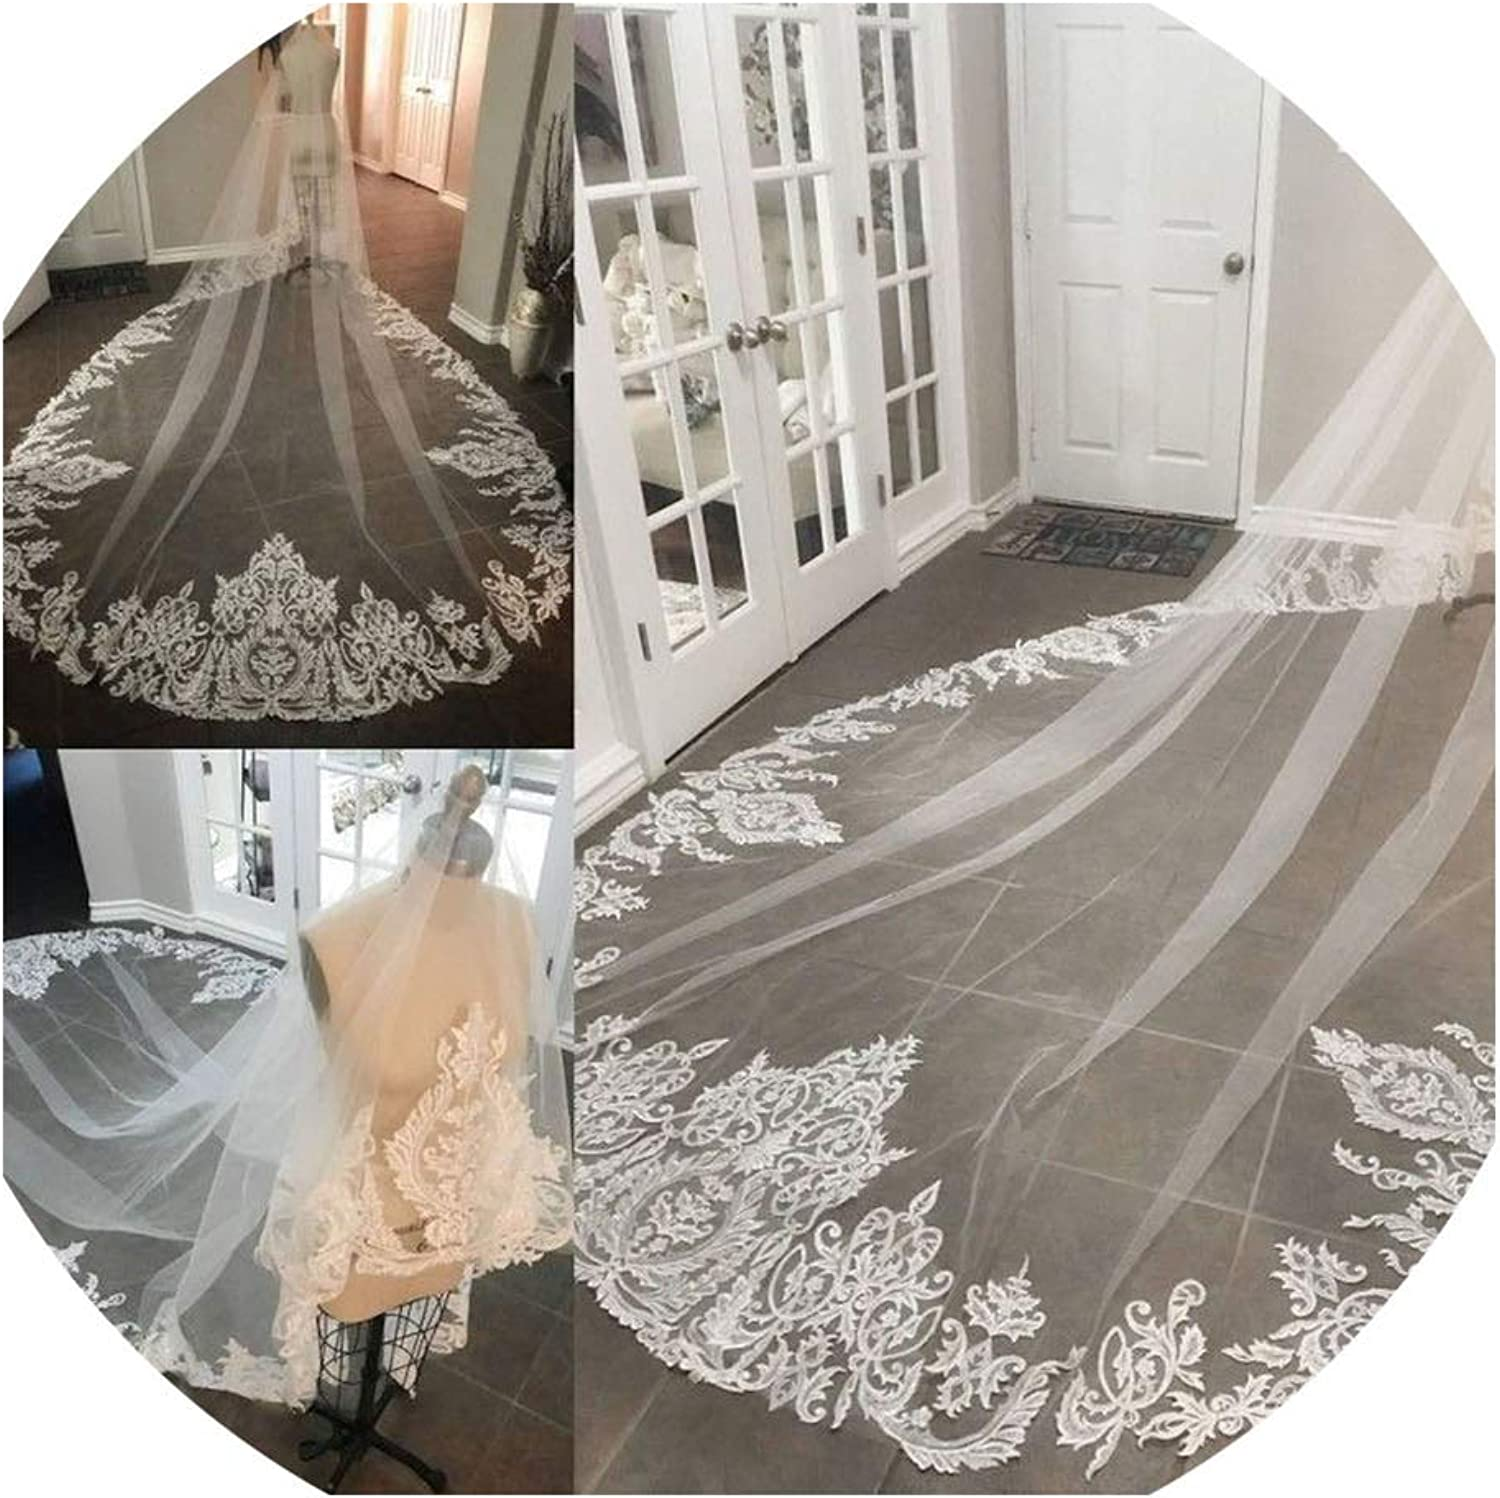 Cathedral Wedding Veils Lace Edge Appliqued OneLayer Bridal Veils Shoulder Length Bridal Veil,White,300cm